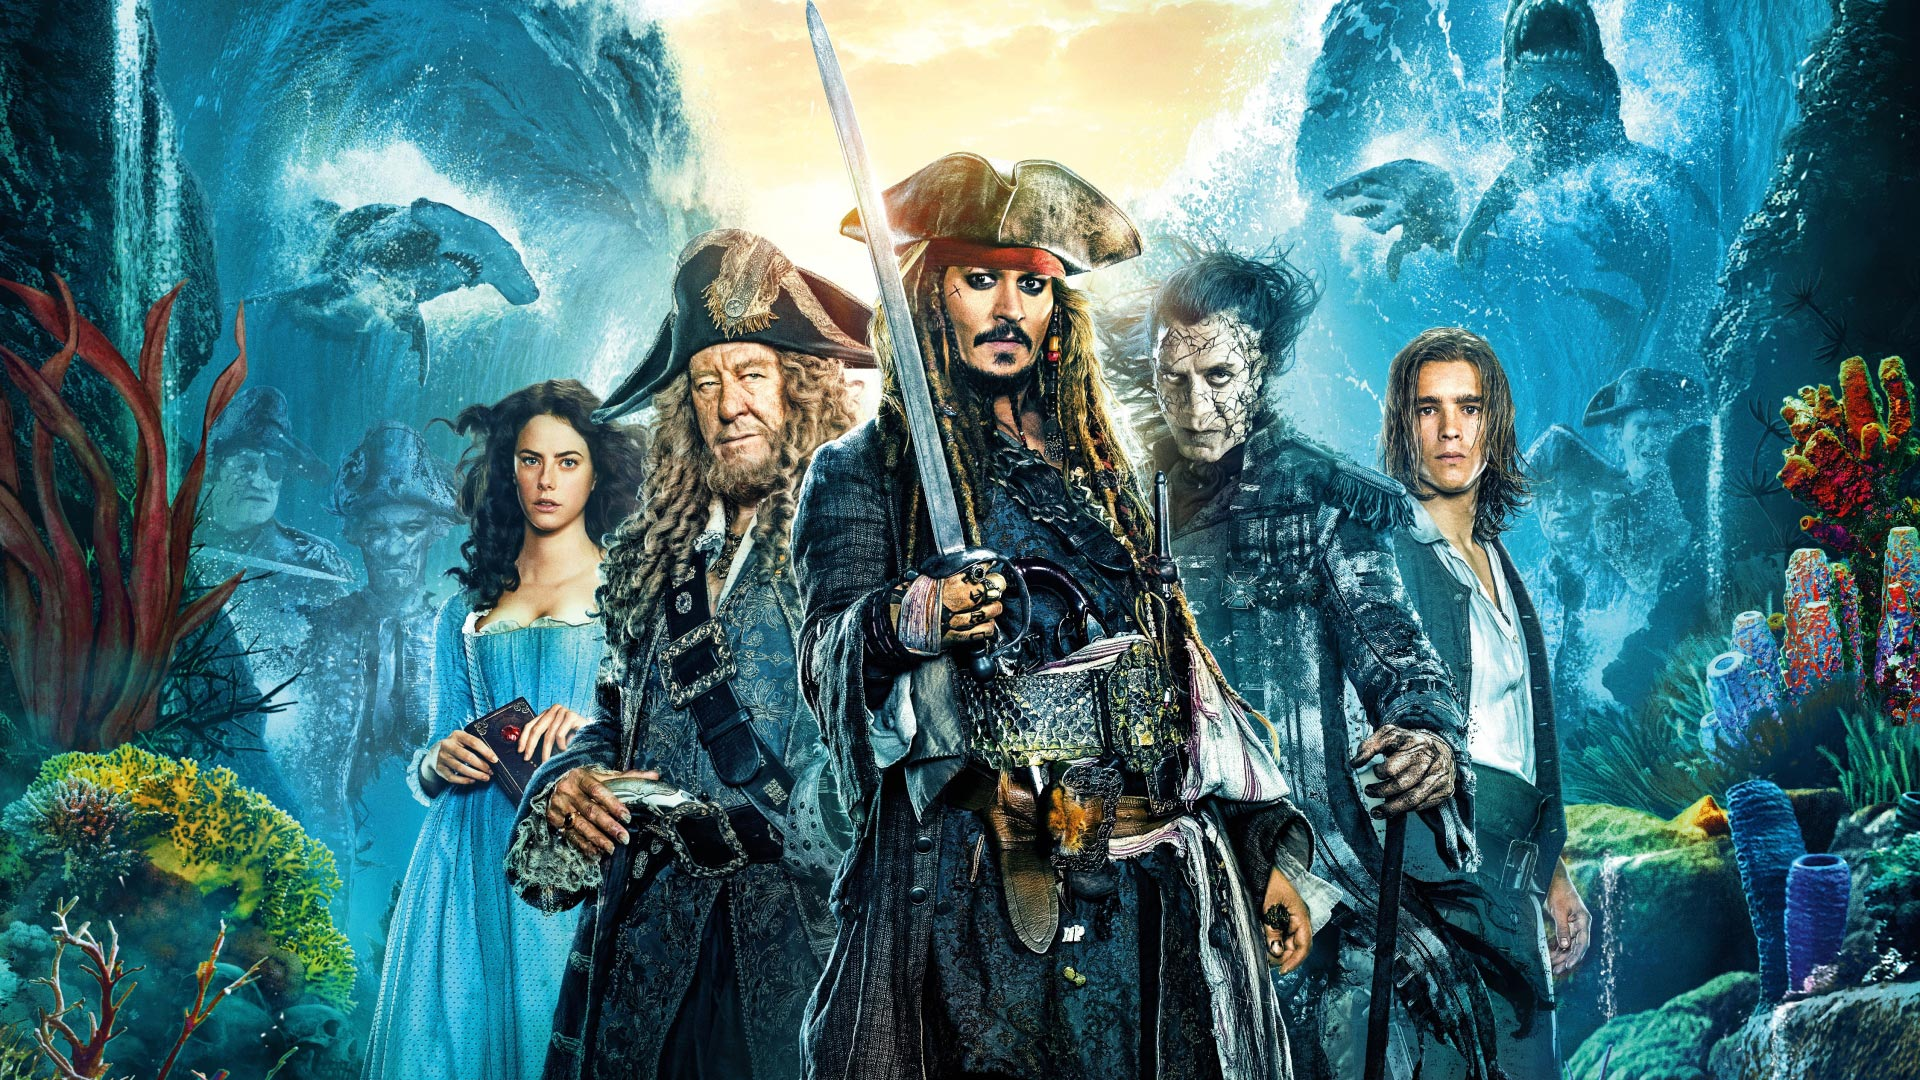 pirates of the caribbean 5 theme music download